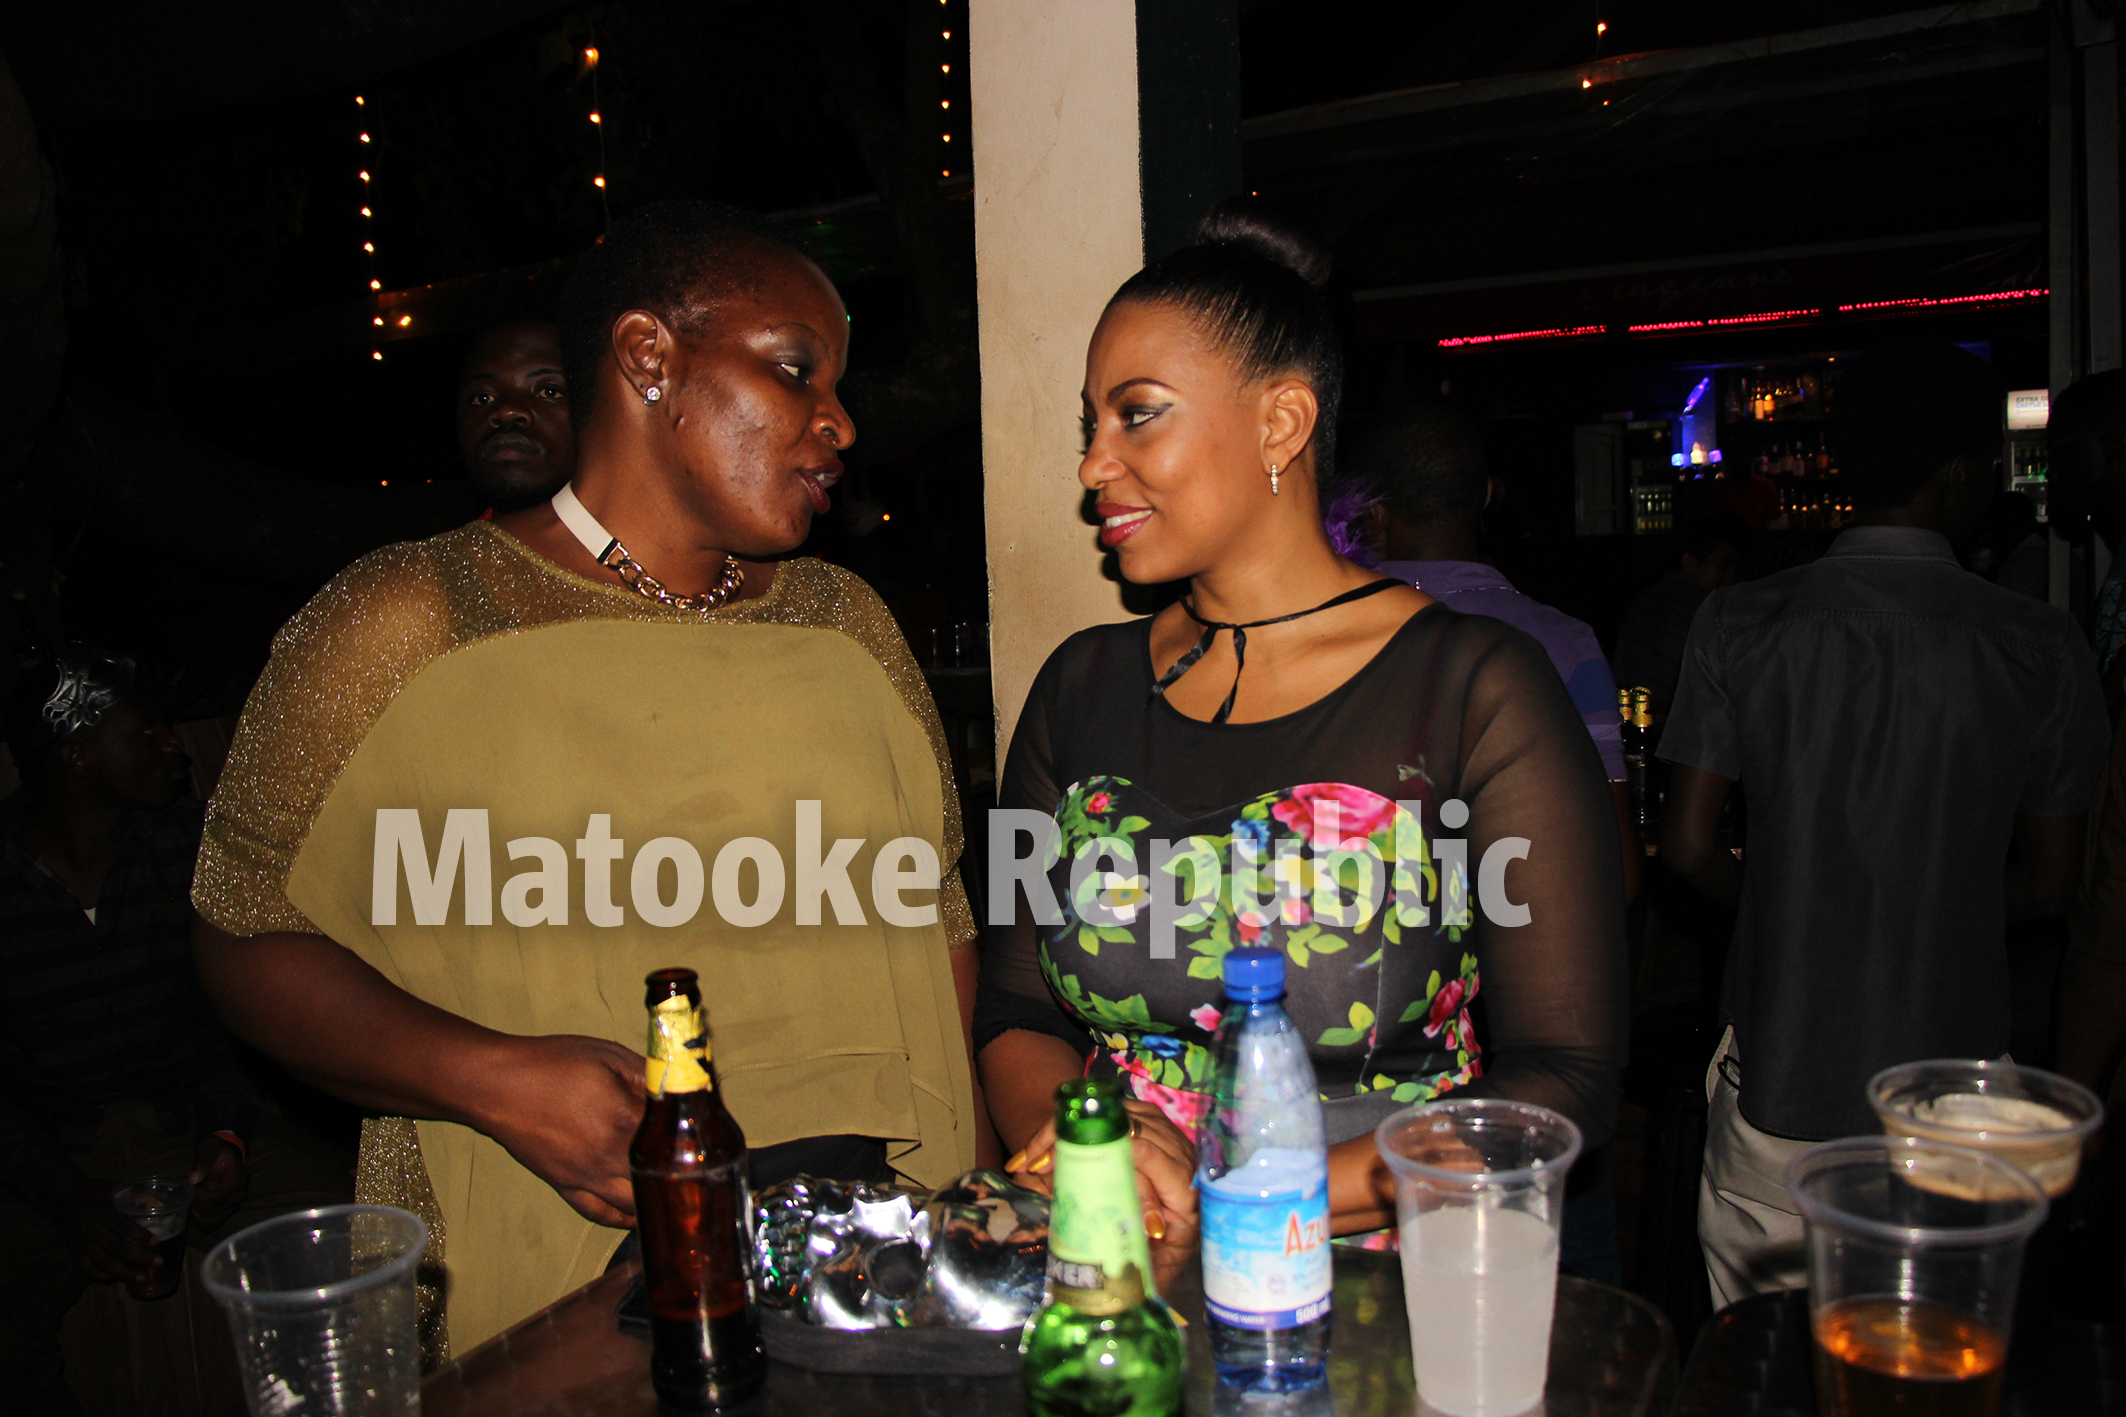 Sanyu FM party brings out wild side of presenters and